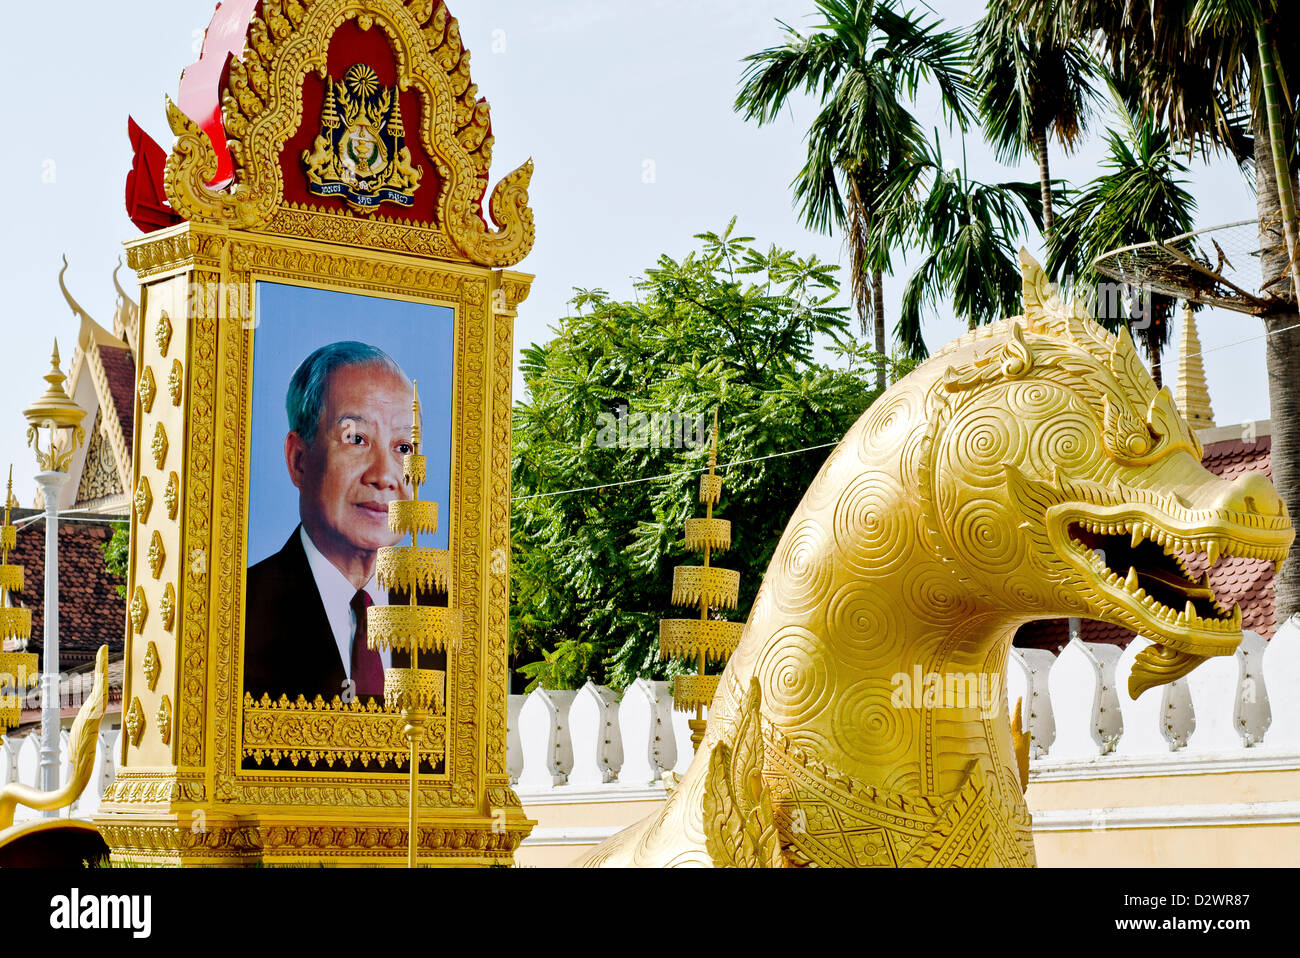 Dragon-shaped vehicle with the portrait of the late King FatherNorodom Sihanouk in front of the Royal Palace,Phnom Stock Photo